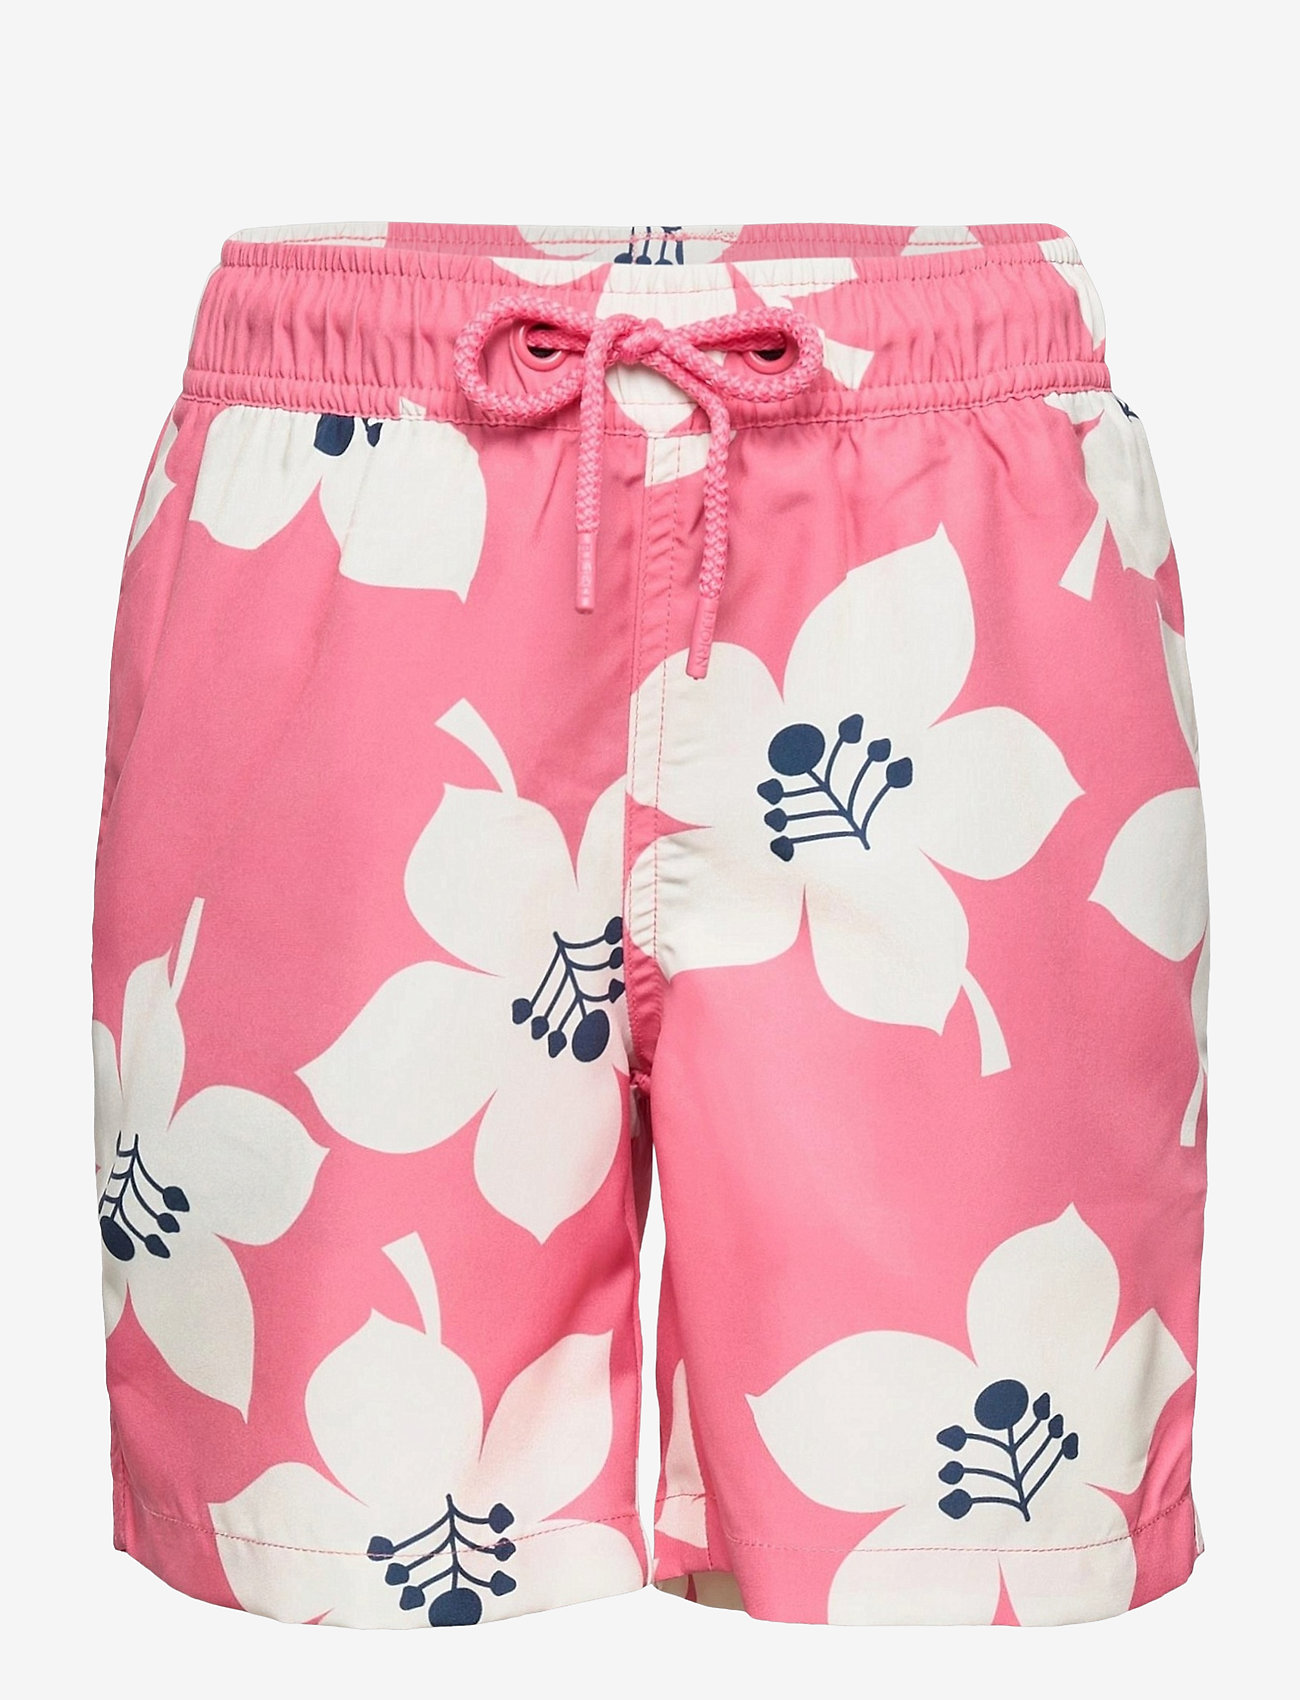 Björn Borg - LOOSE SHORTS KENNY KENNY - bademode - bb graphic floral sunkist cora - 0